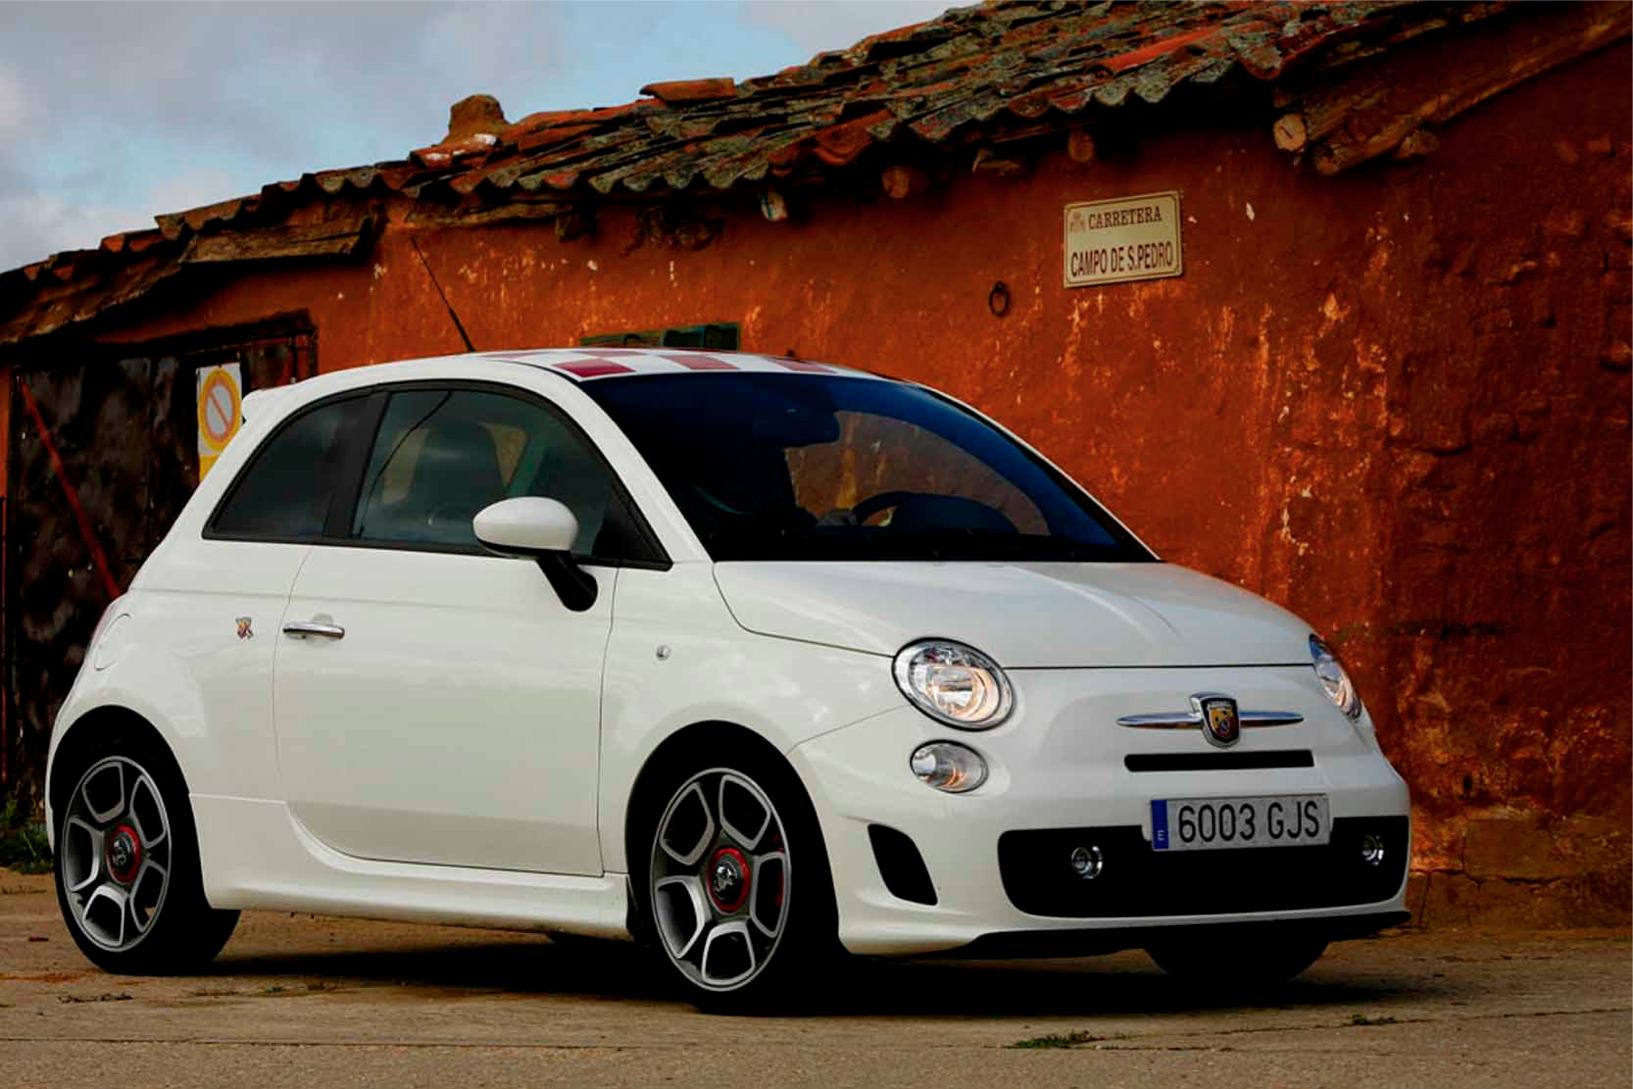 Abarth  500  Abarth   http://www.voiturepourlui.com/images/Abarth//Exterieur/Fiat_500_Abarth_025.jpg